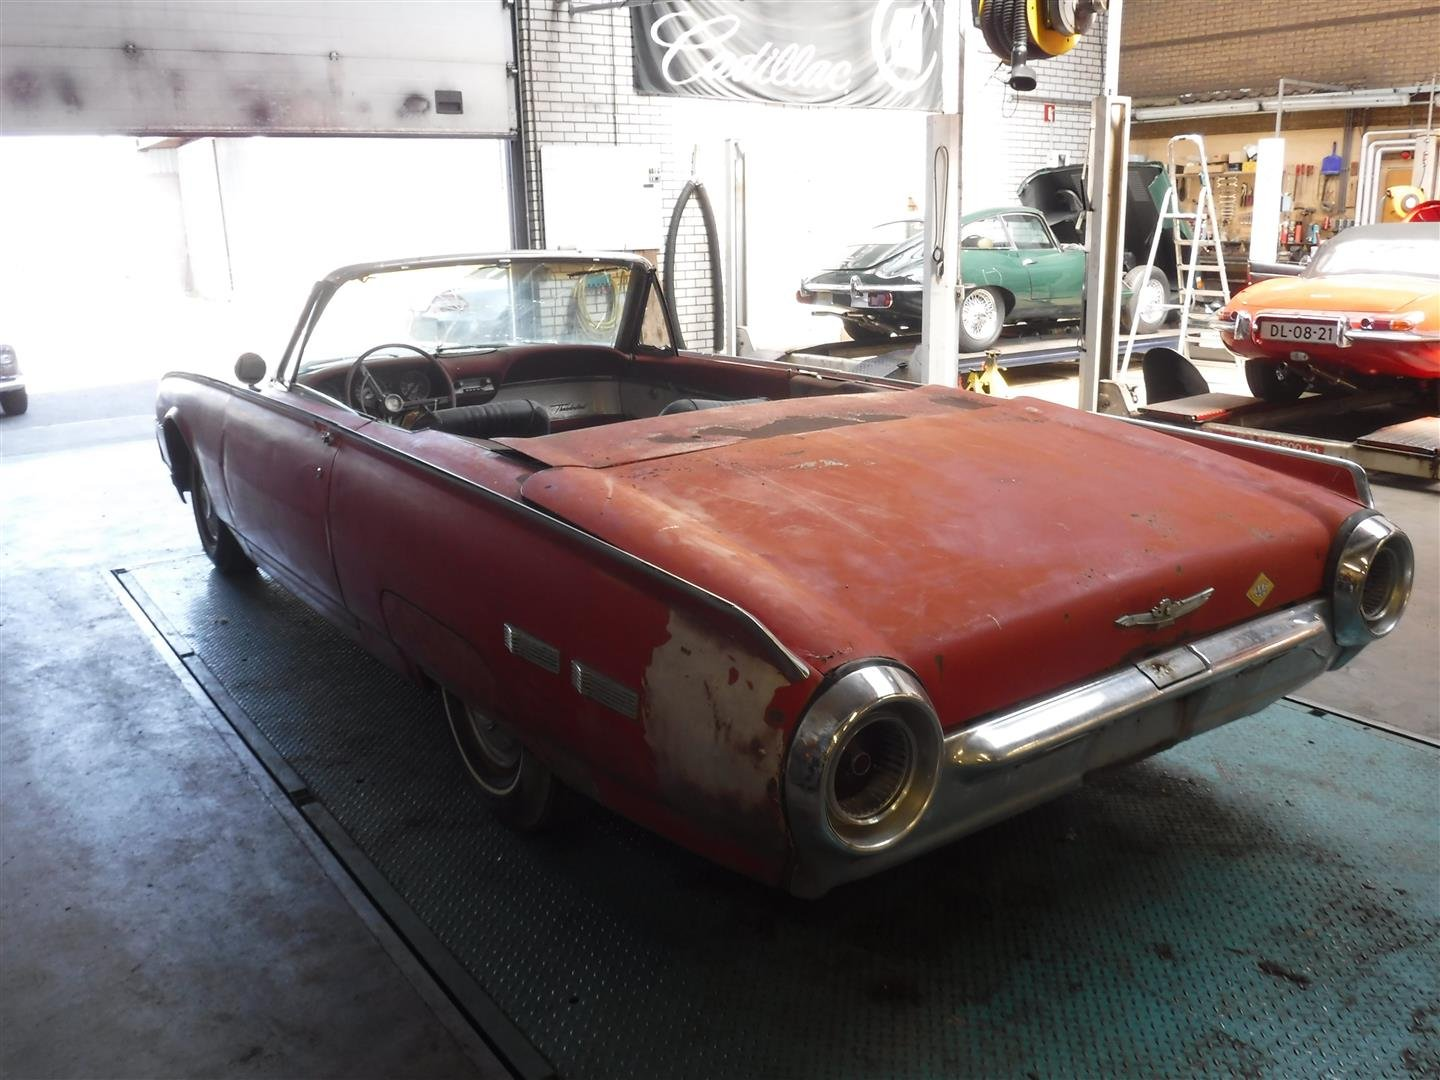 1950 Ford Thunderbird Convertible '50 (to restore) For Sale (picture 2 of 6)